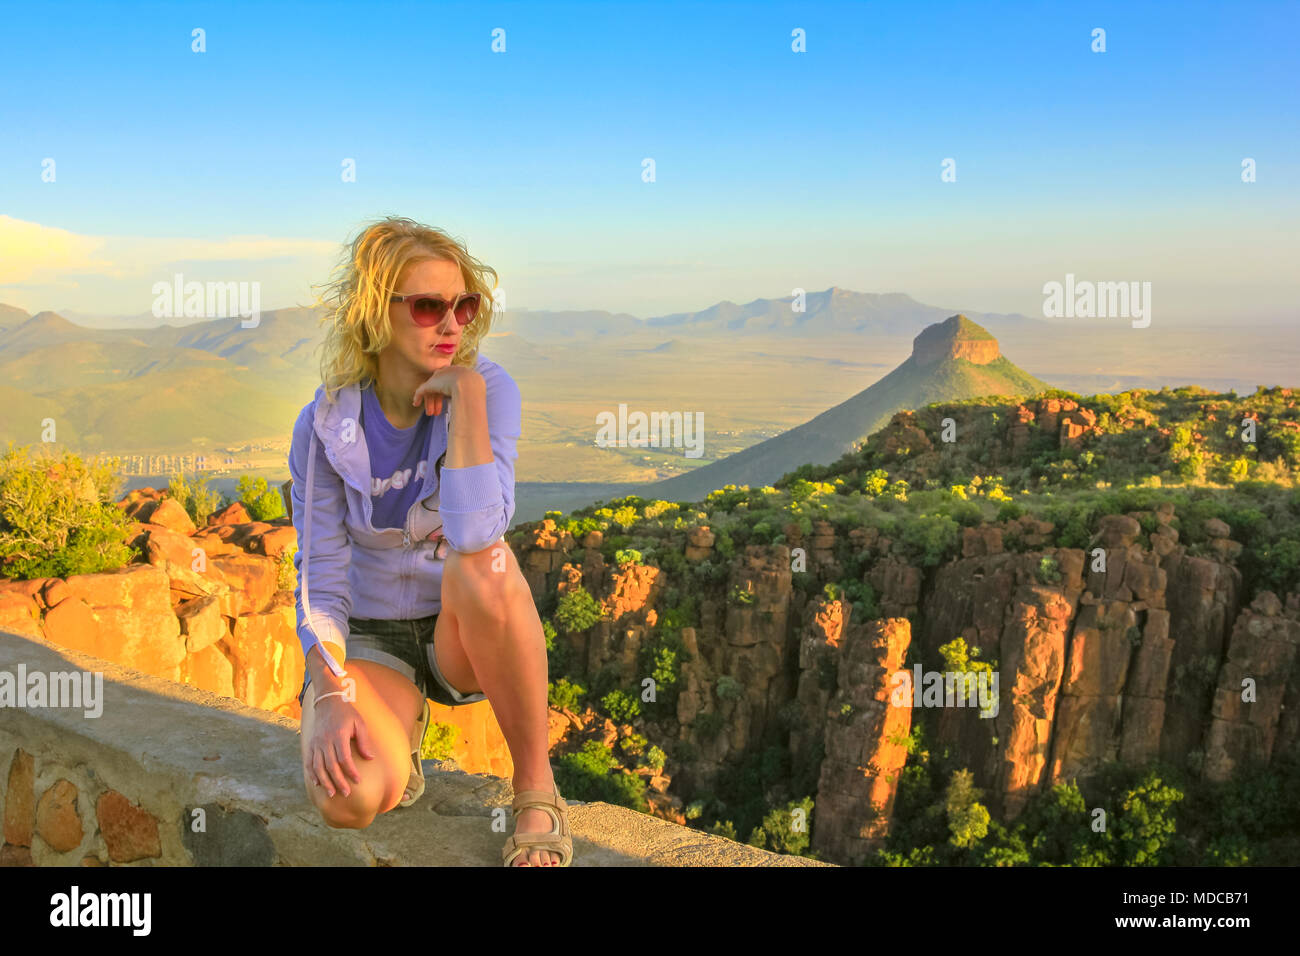 Young tourist sitting on the rocks at sunset after trekking at Valley of Desolation near Graaff-Reinet, South Africa. Blonde woman enjoying aerial views of Camdeboo National Park, Karoo, Eastern Cape. - Stock Image